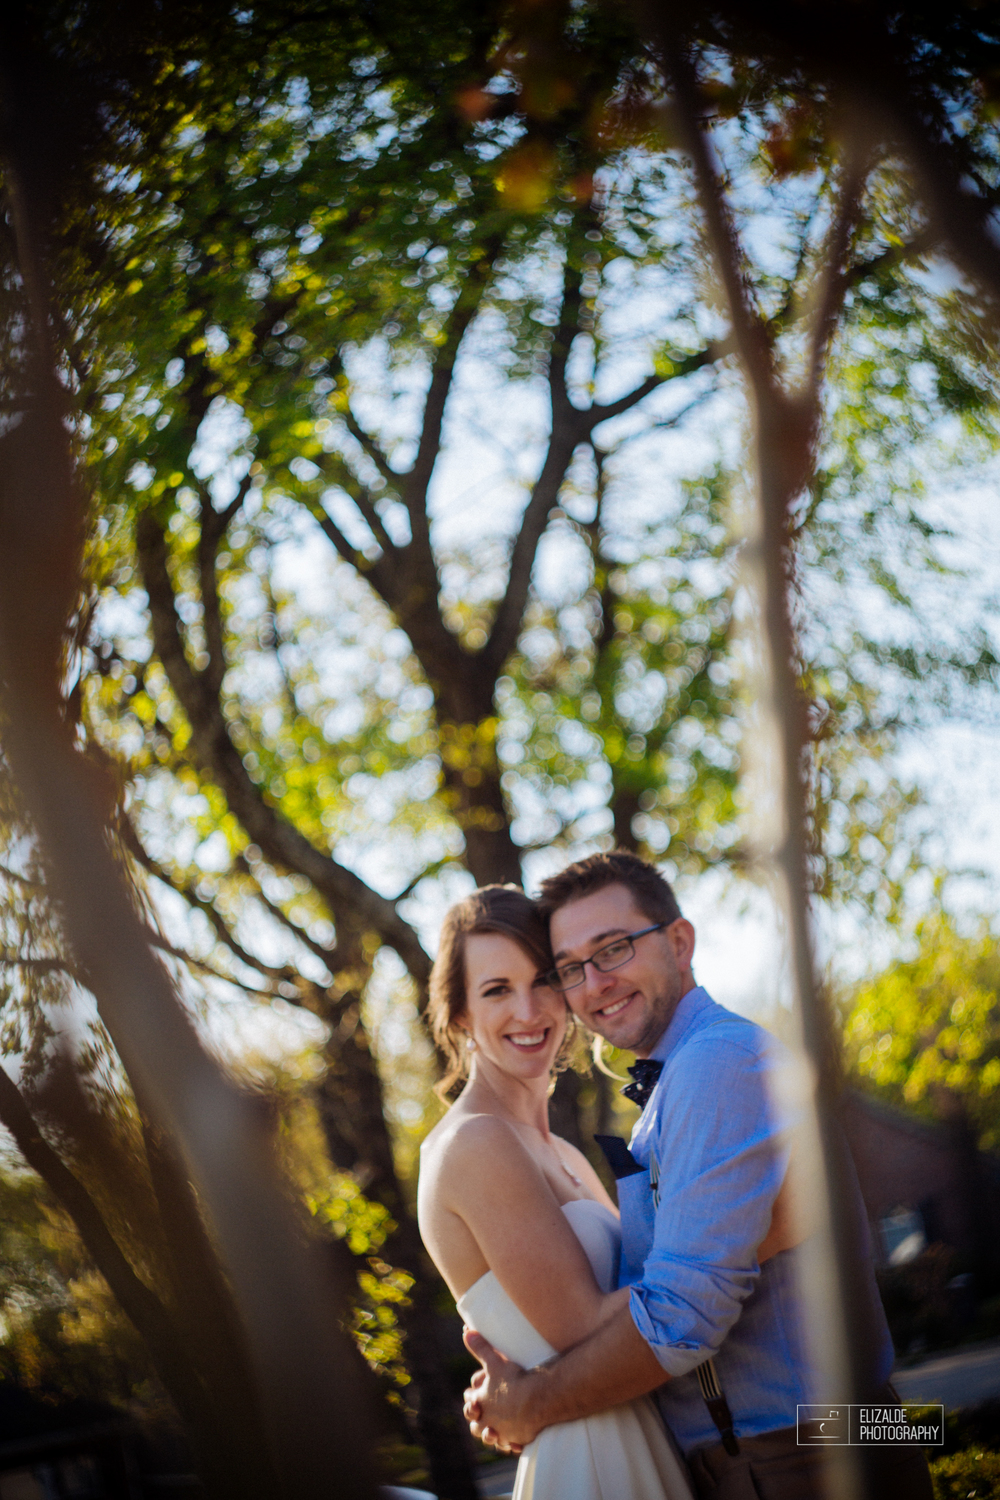 Denton wedding photographer_DFW photographer_elizalde photography_juliana and jeff71.jpg